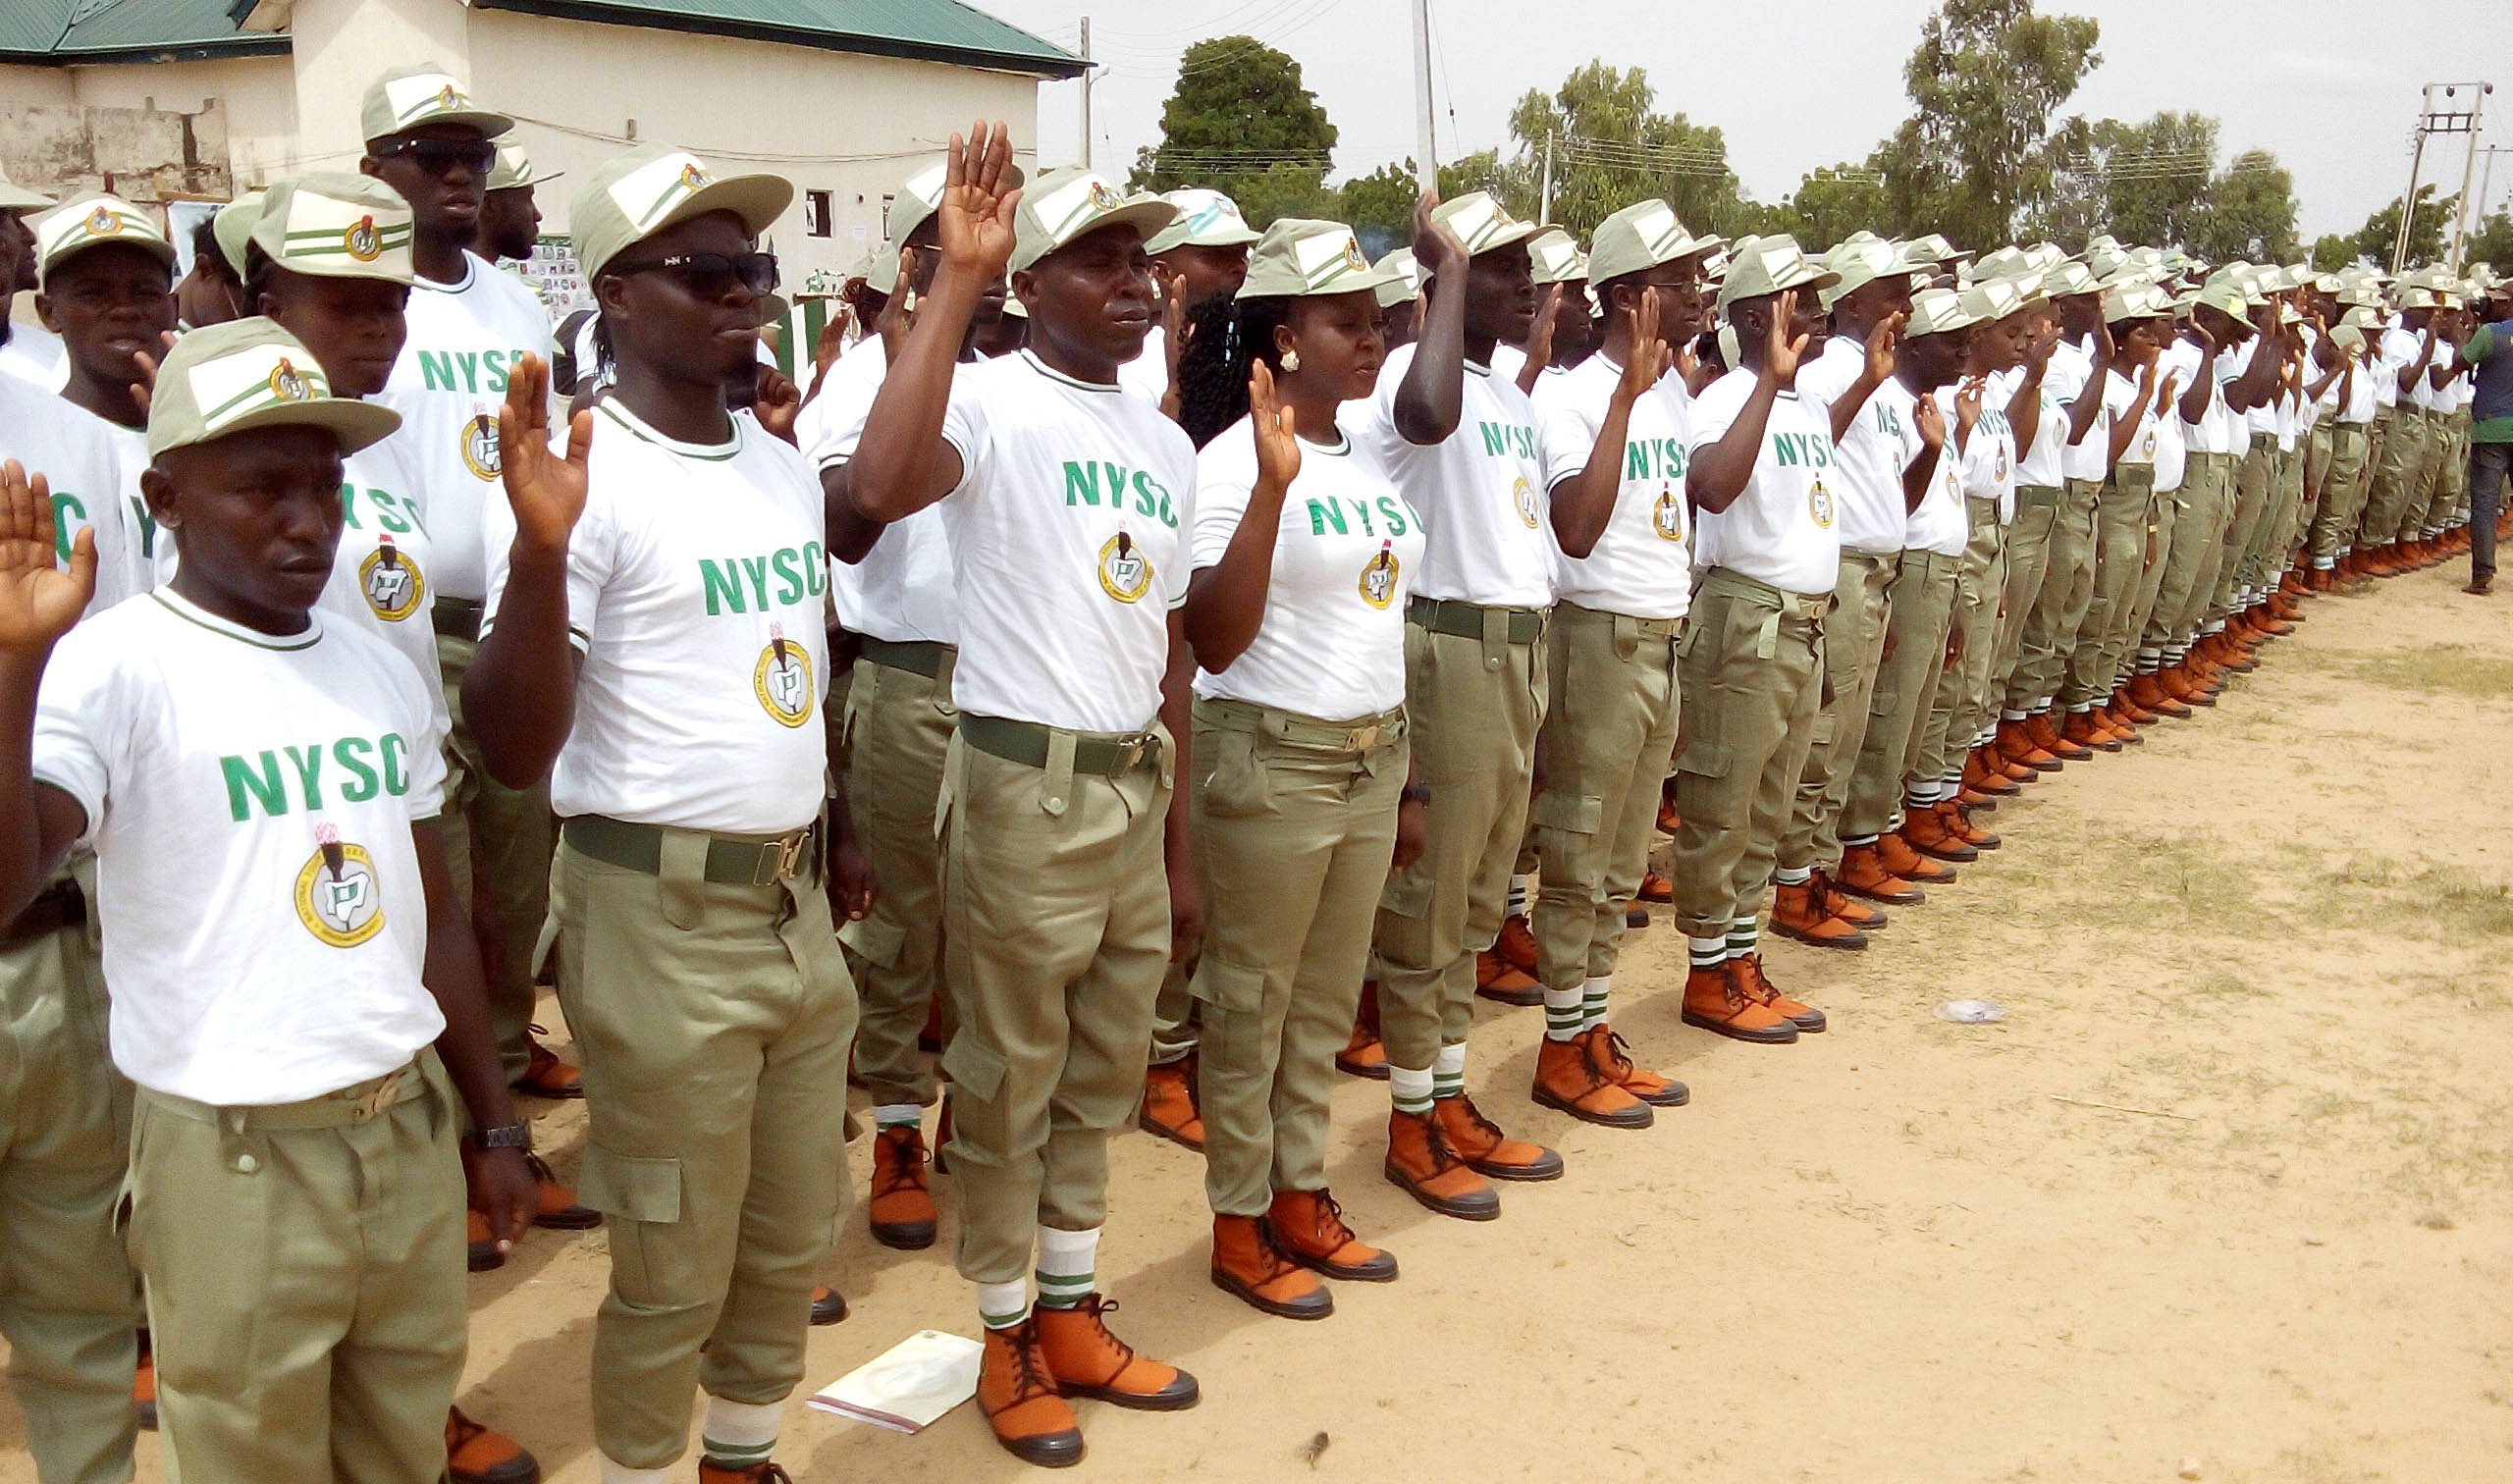 If The NYSC Decree Is Removed From The Constitution, Lots Of Problems Will Arise